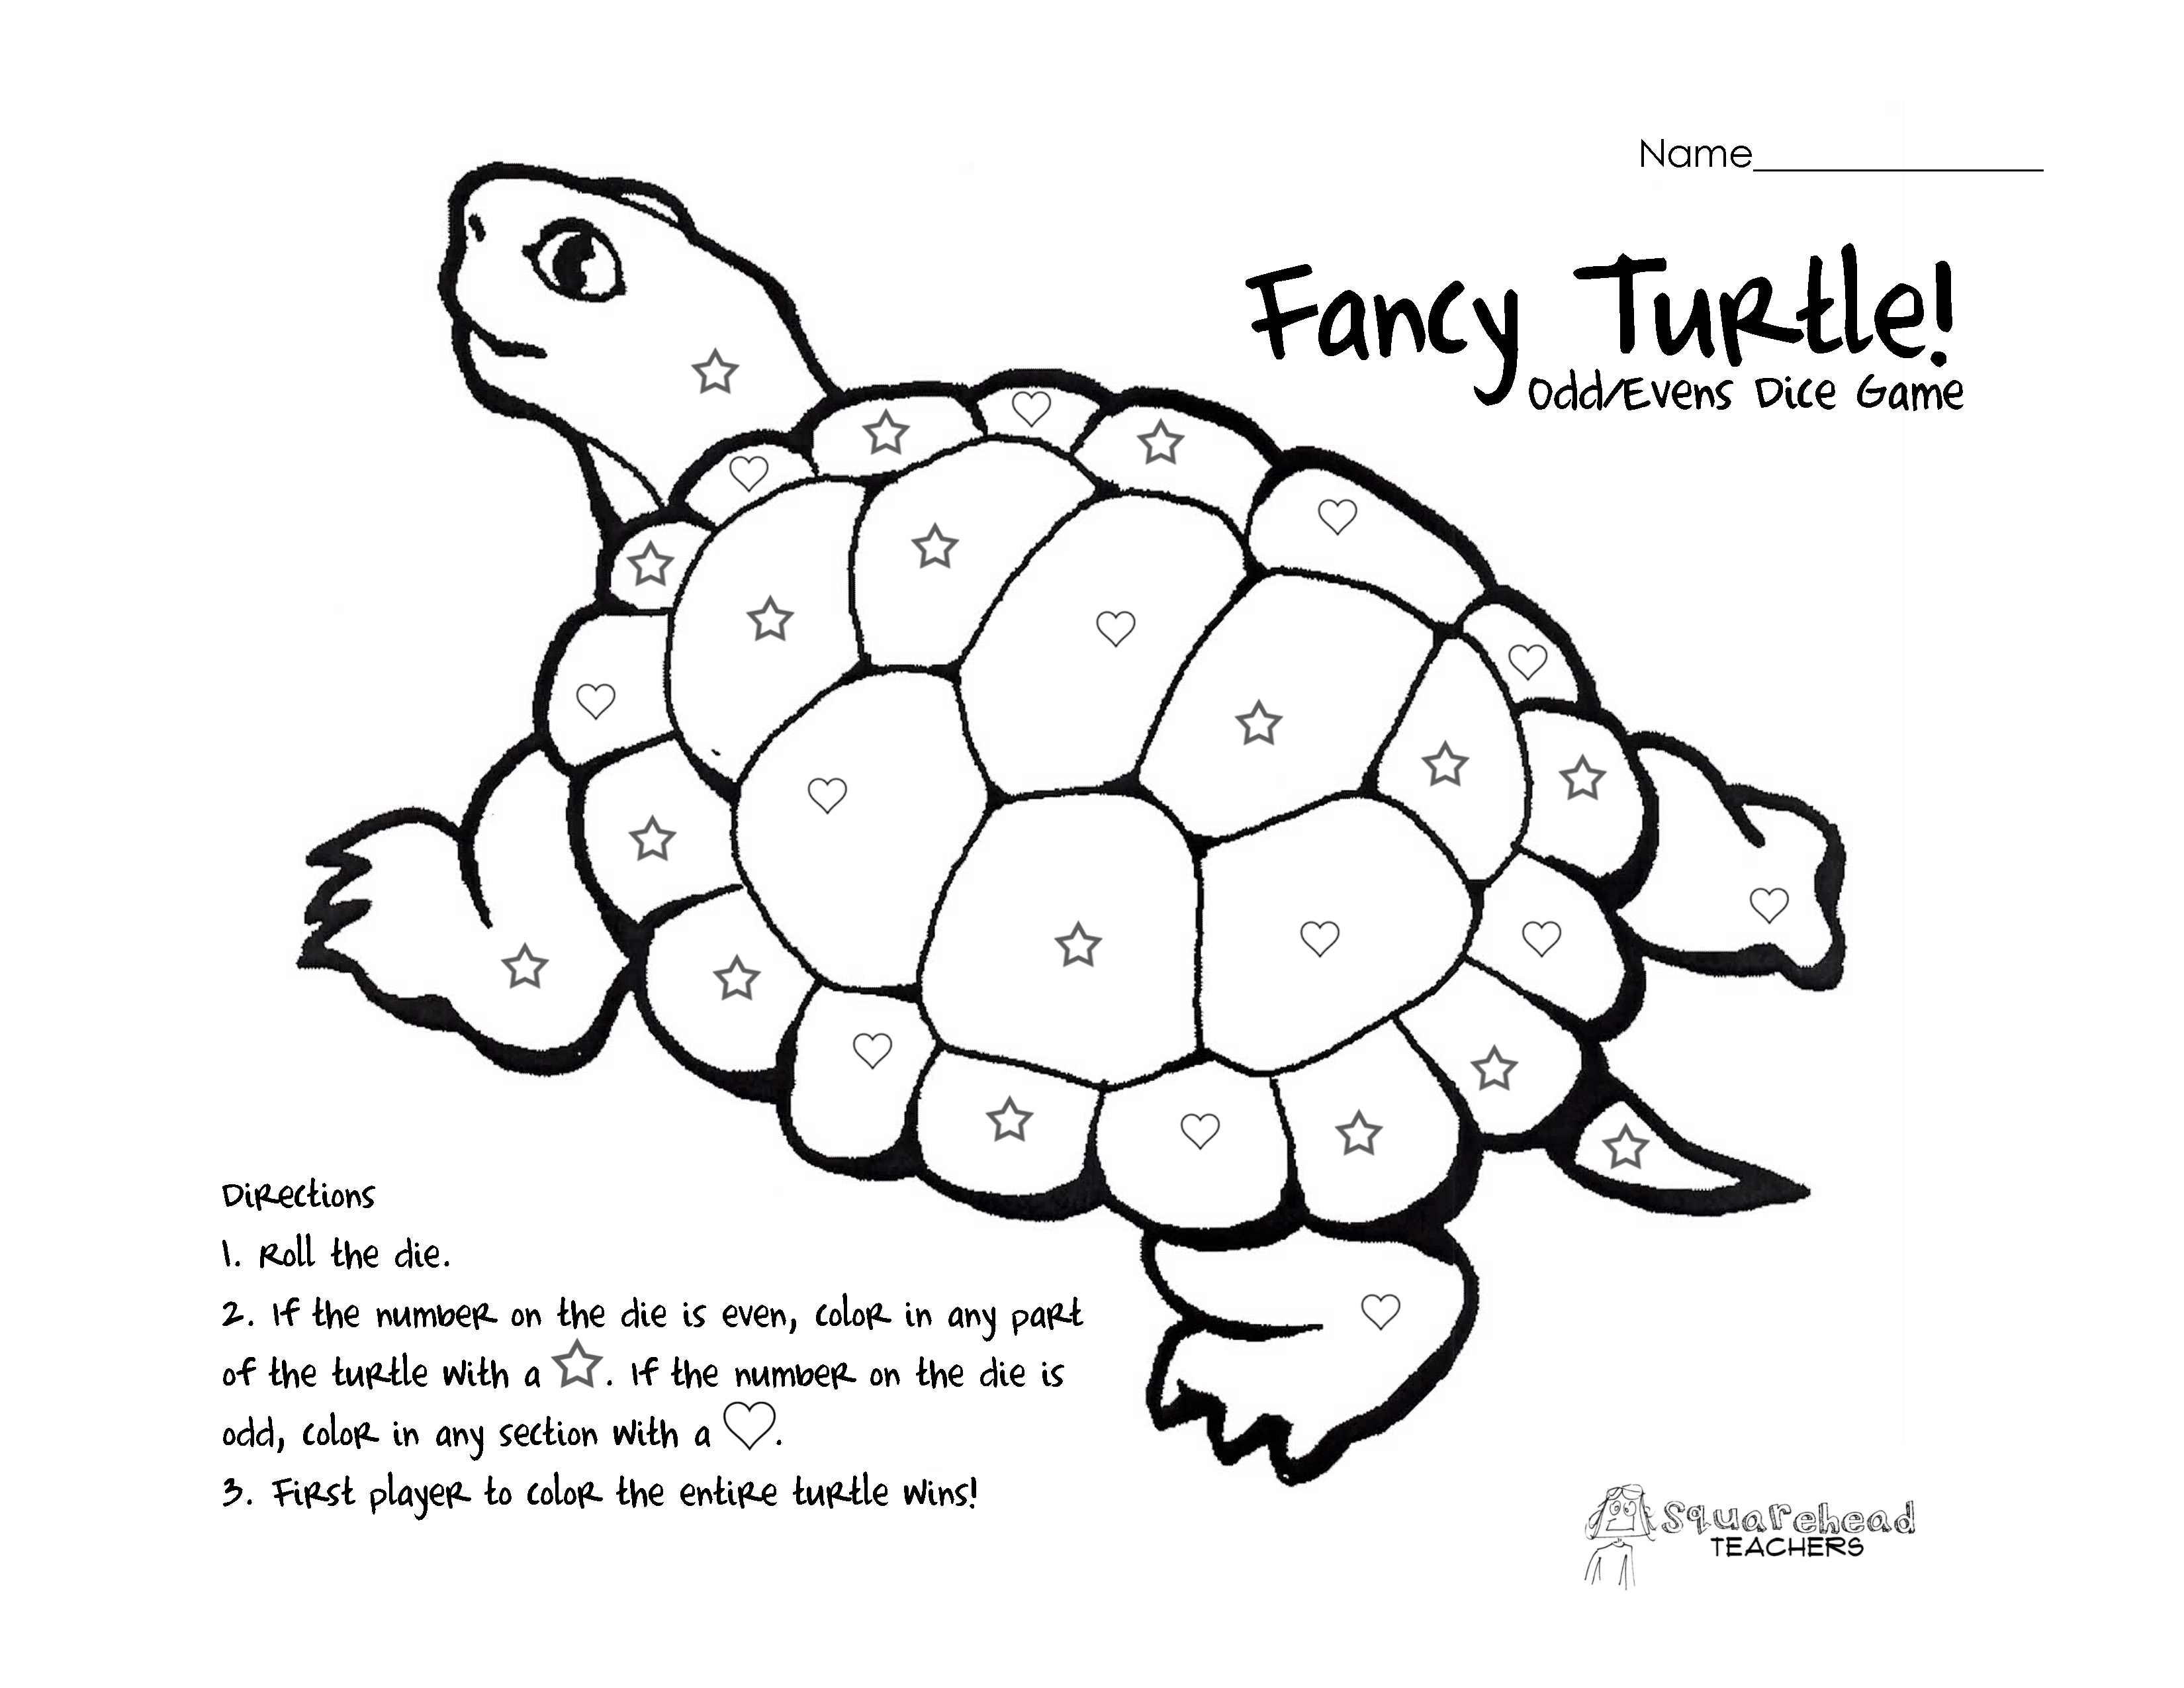 Fancy Turtle Odd Evens Dice Game